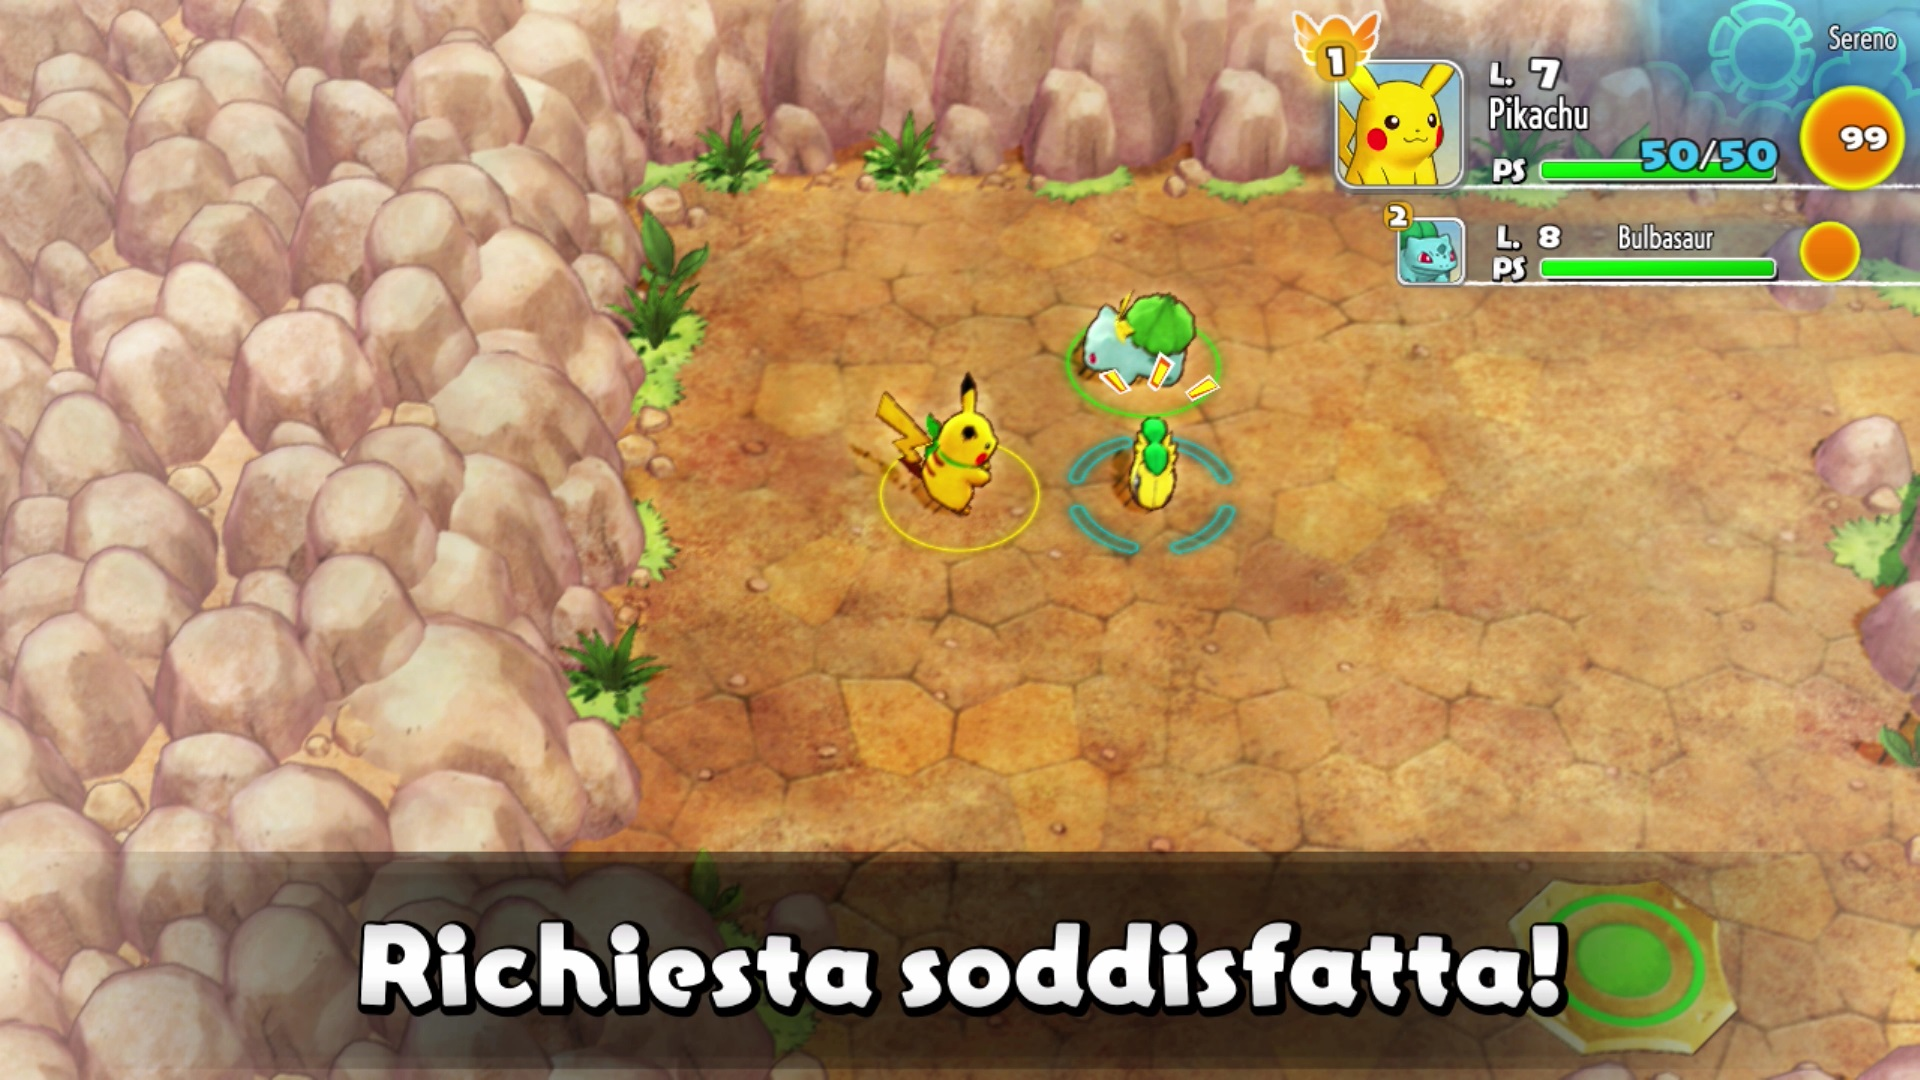 NSwitch_PokemonMysteryDungeon_04_IT.jpg